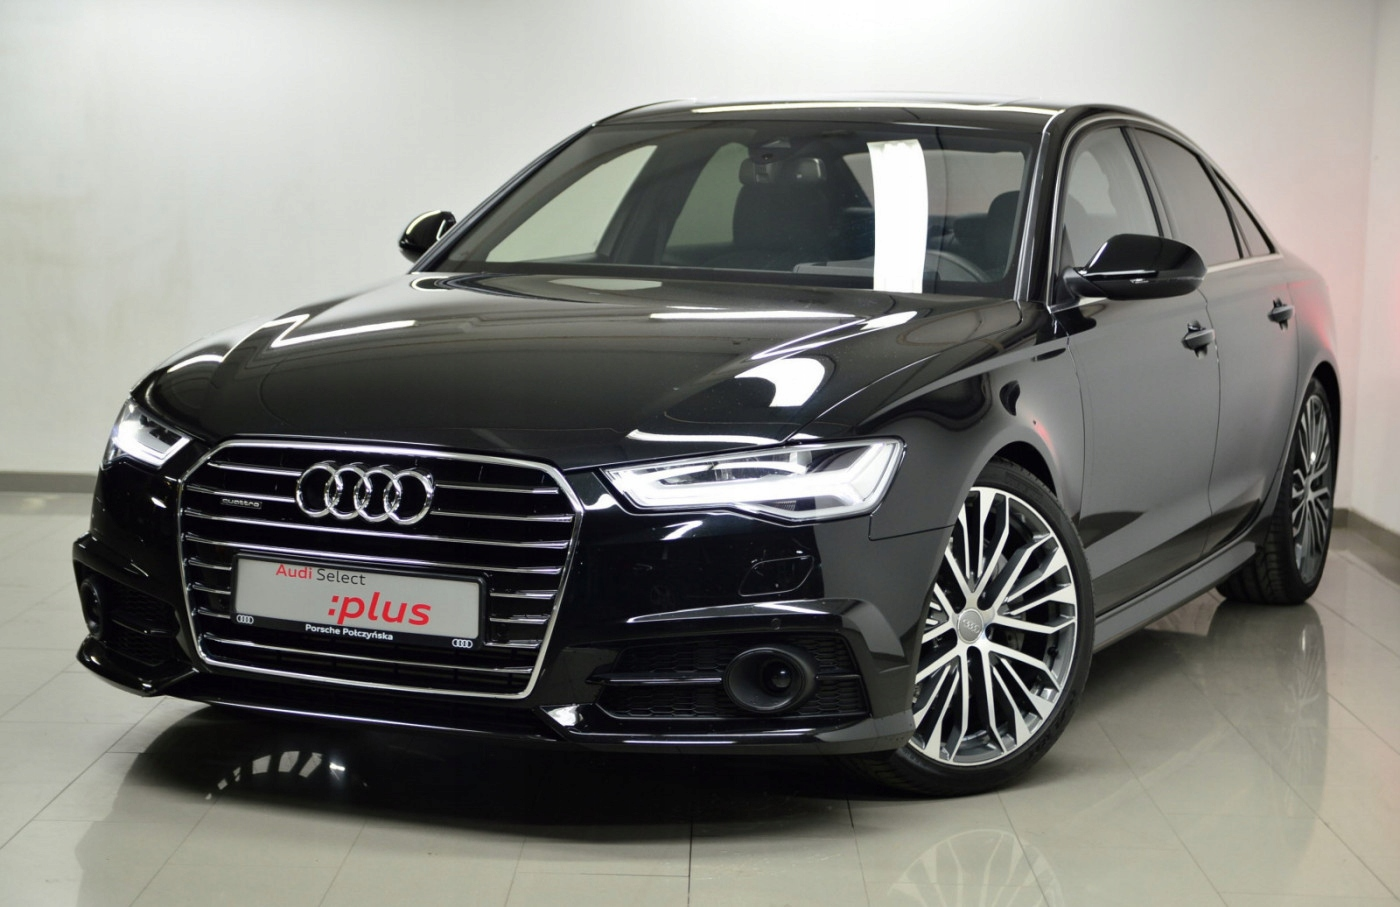 Audi A6 fv23%,Night-vision, Head-up